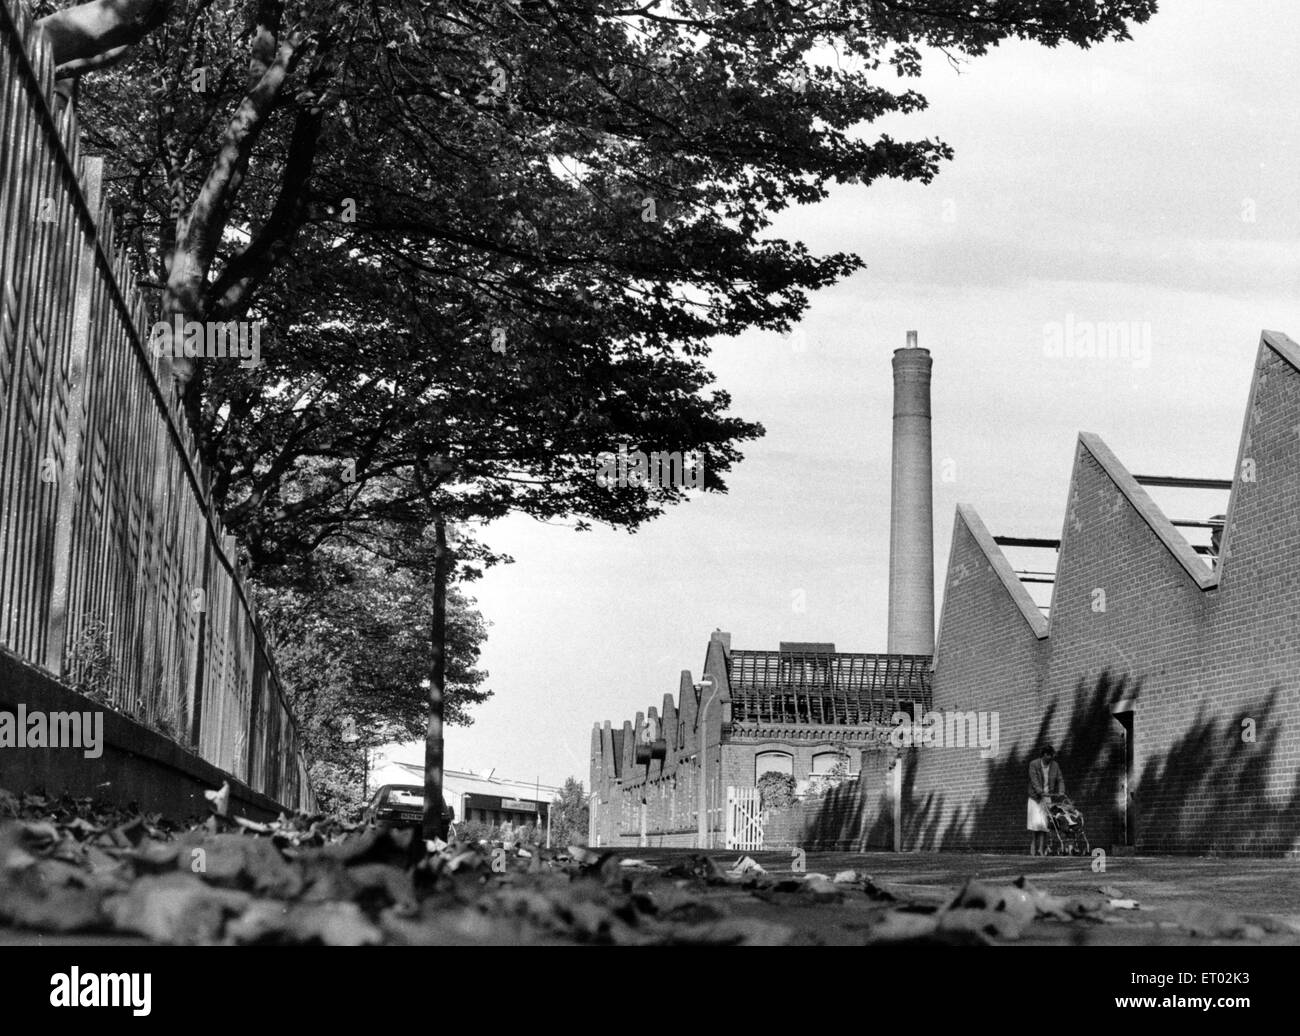 Demolition at J. J. Cash Ltd. 17th October 1985. - Stock Image